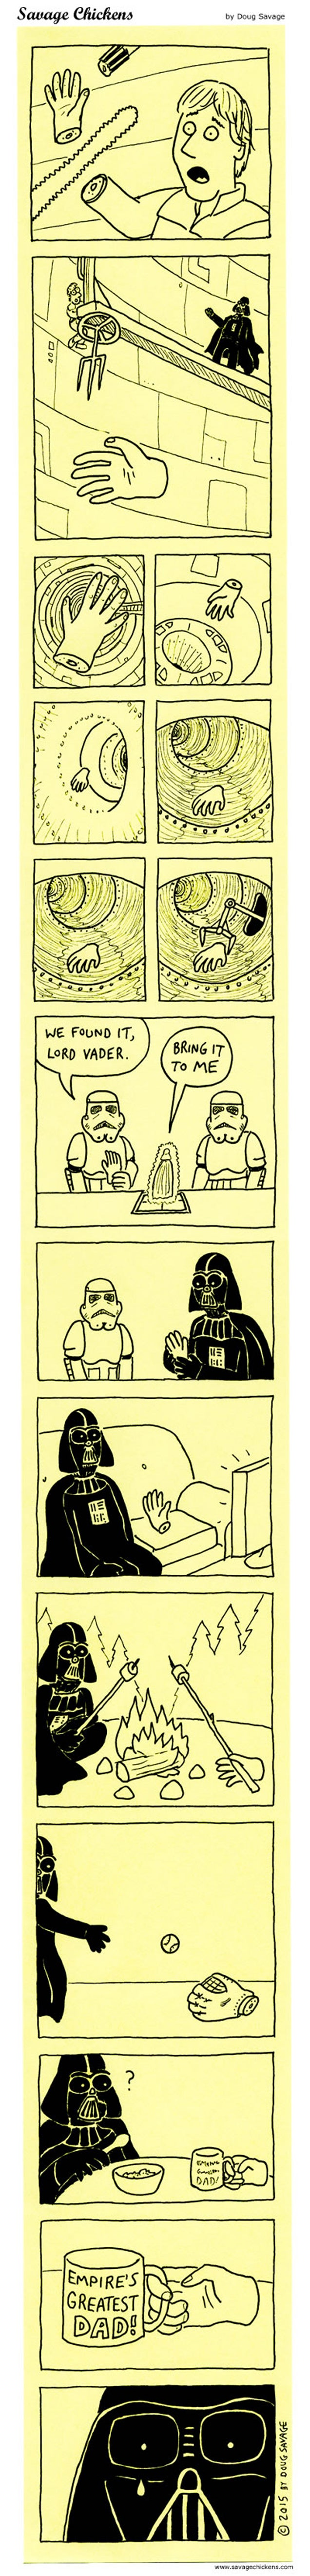 What Really Happened With Luke's Hand After His Duel With Darth Vader